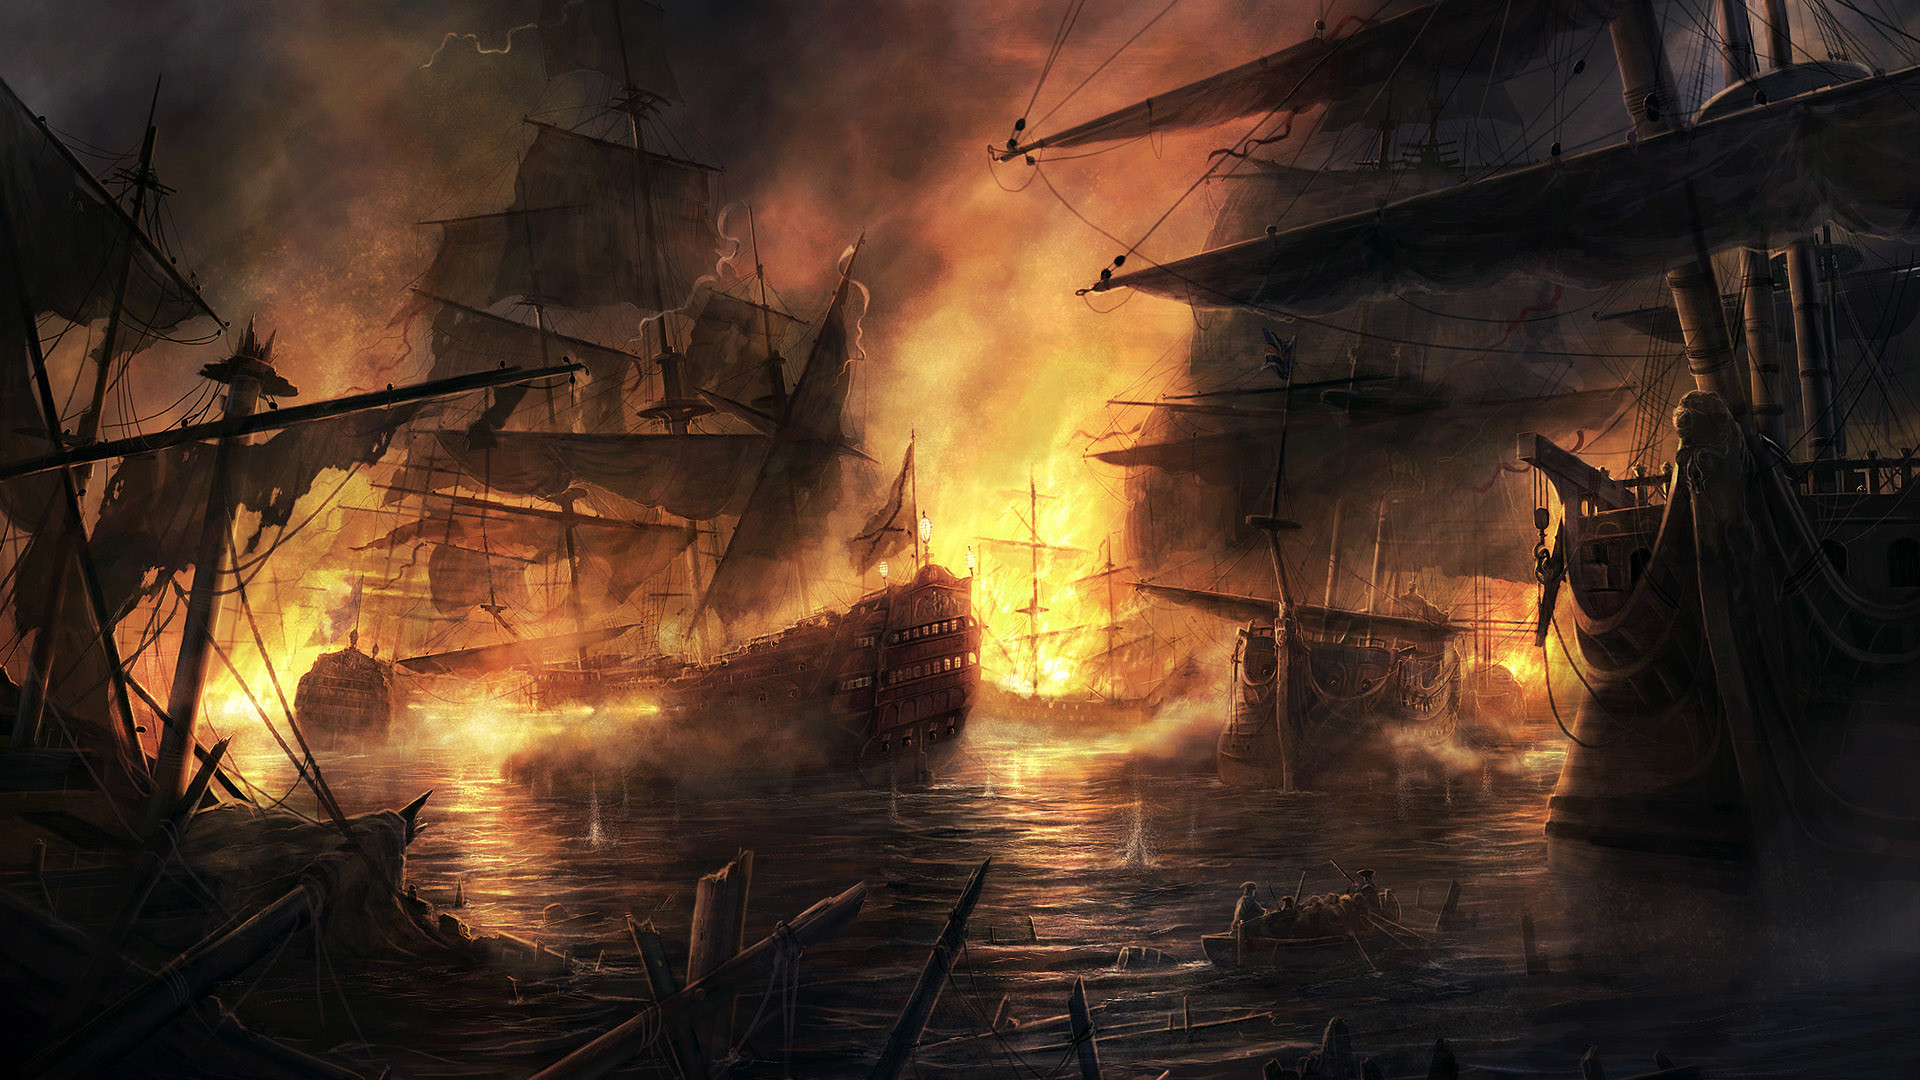 Old Pirate Ships Old Sailing Ships Pirate Wallpapers Windows 1920×1080